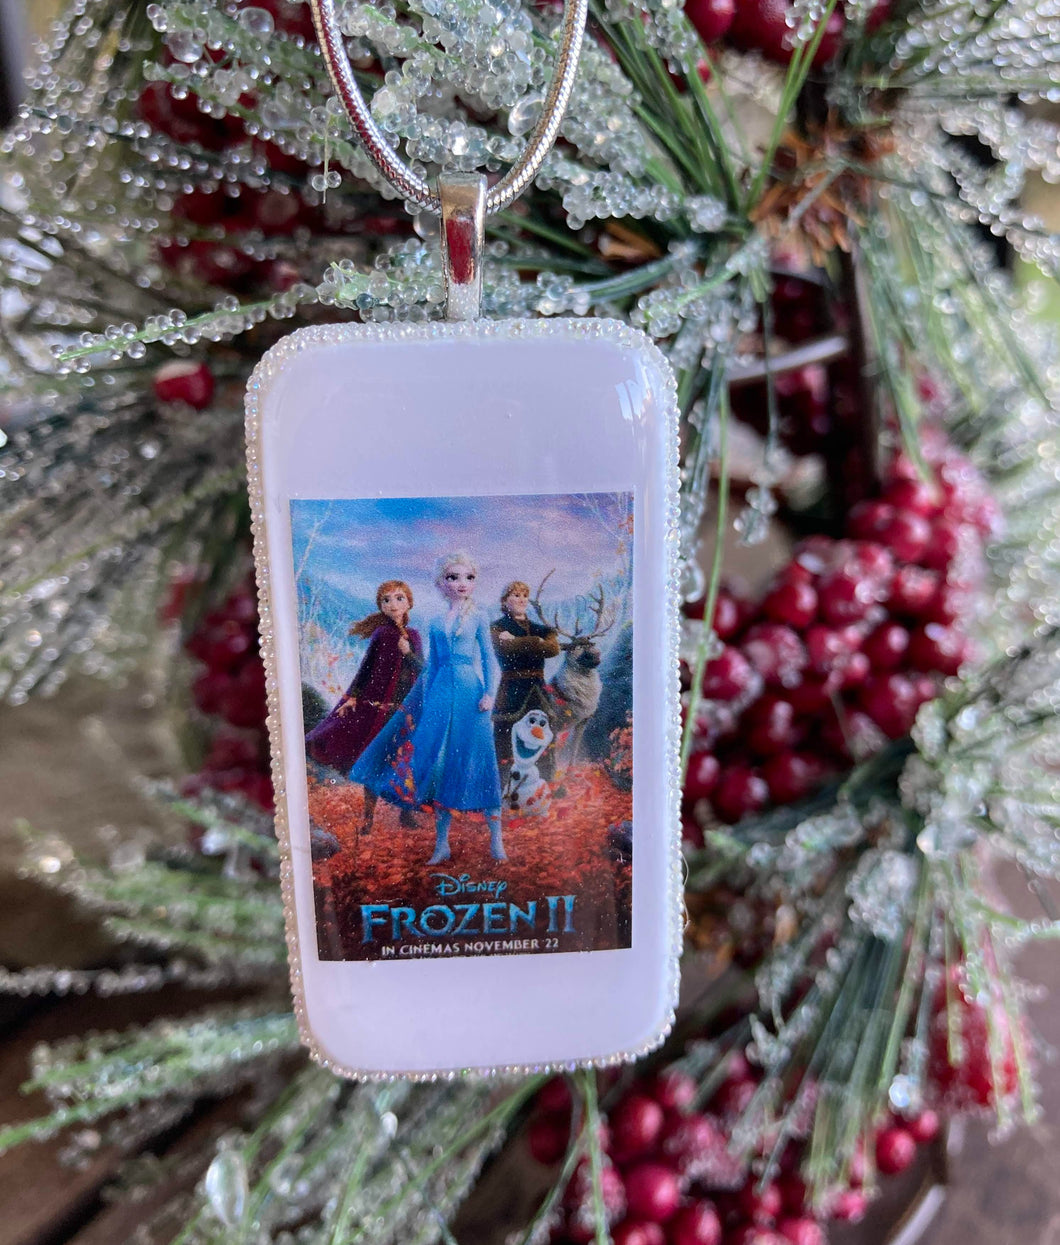 Frozen 2 Domino Christmas Ornament (Poster)